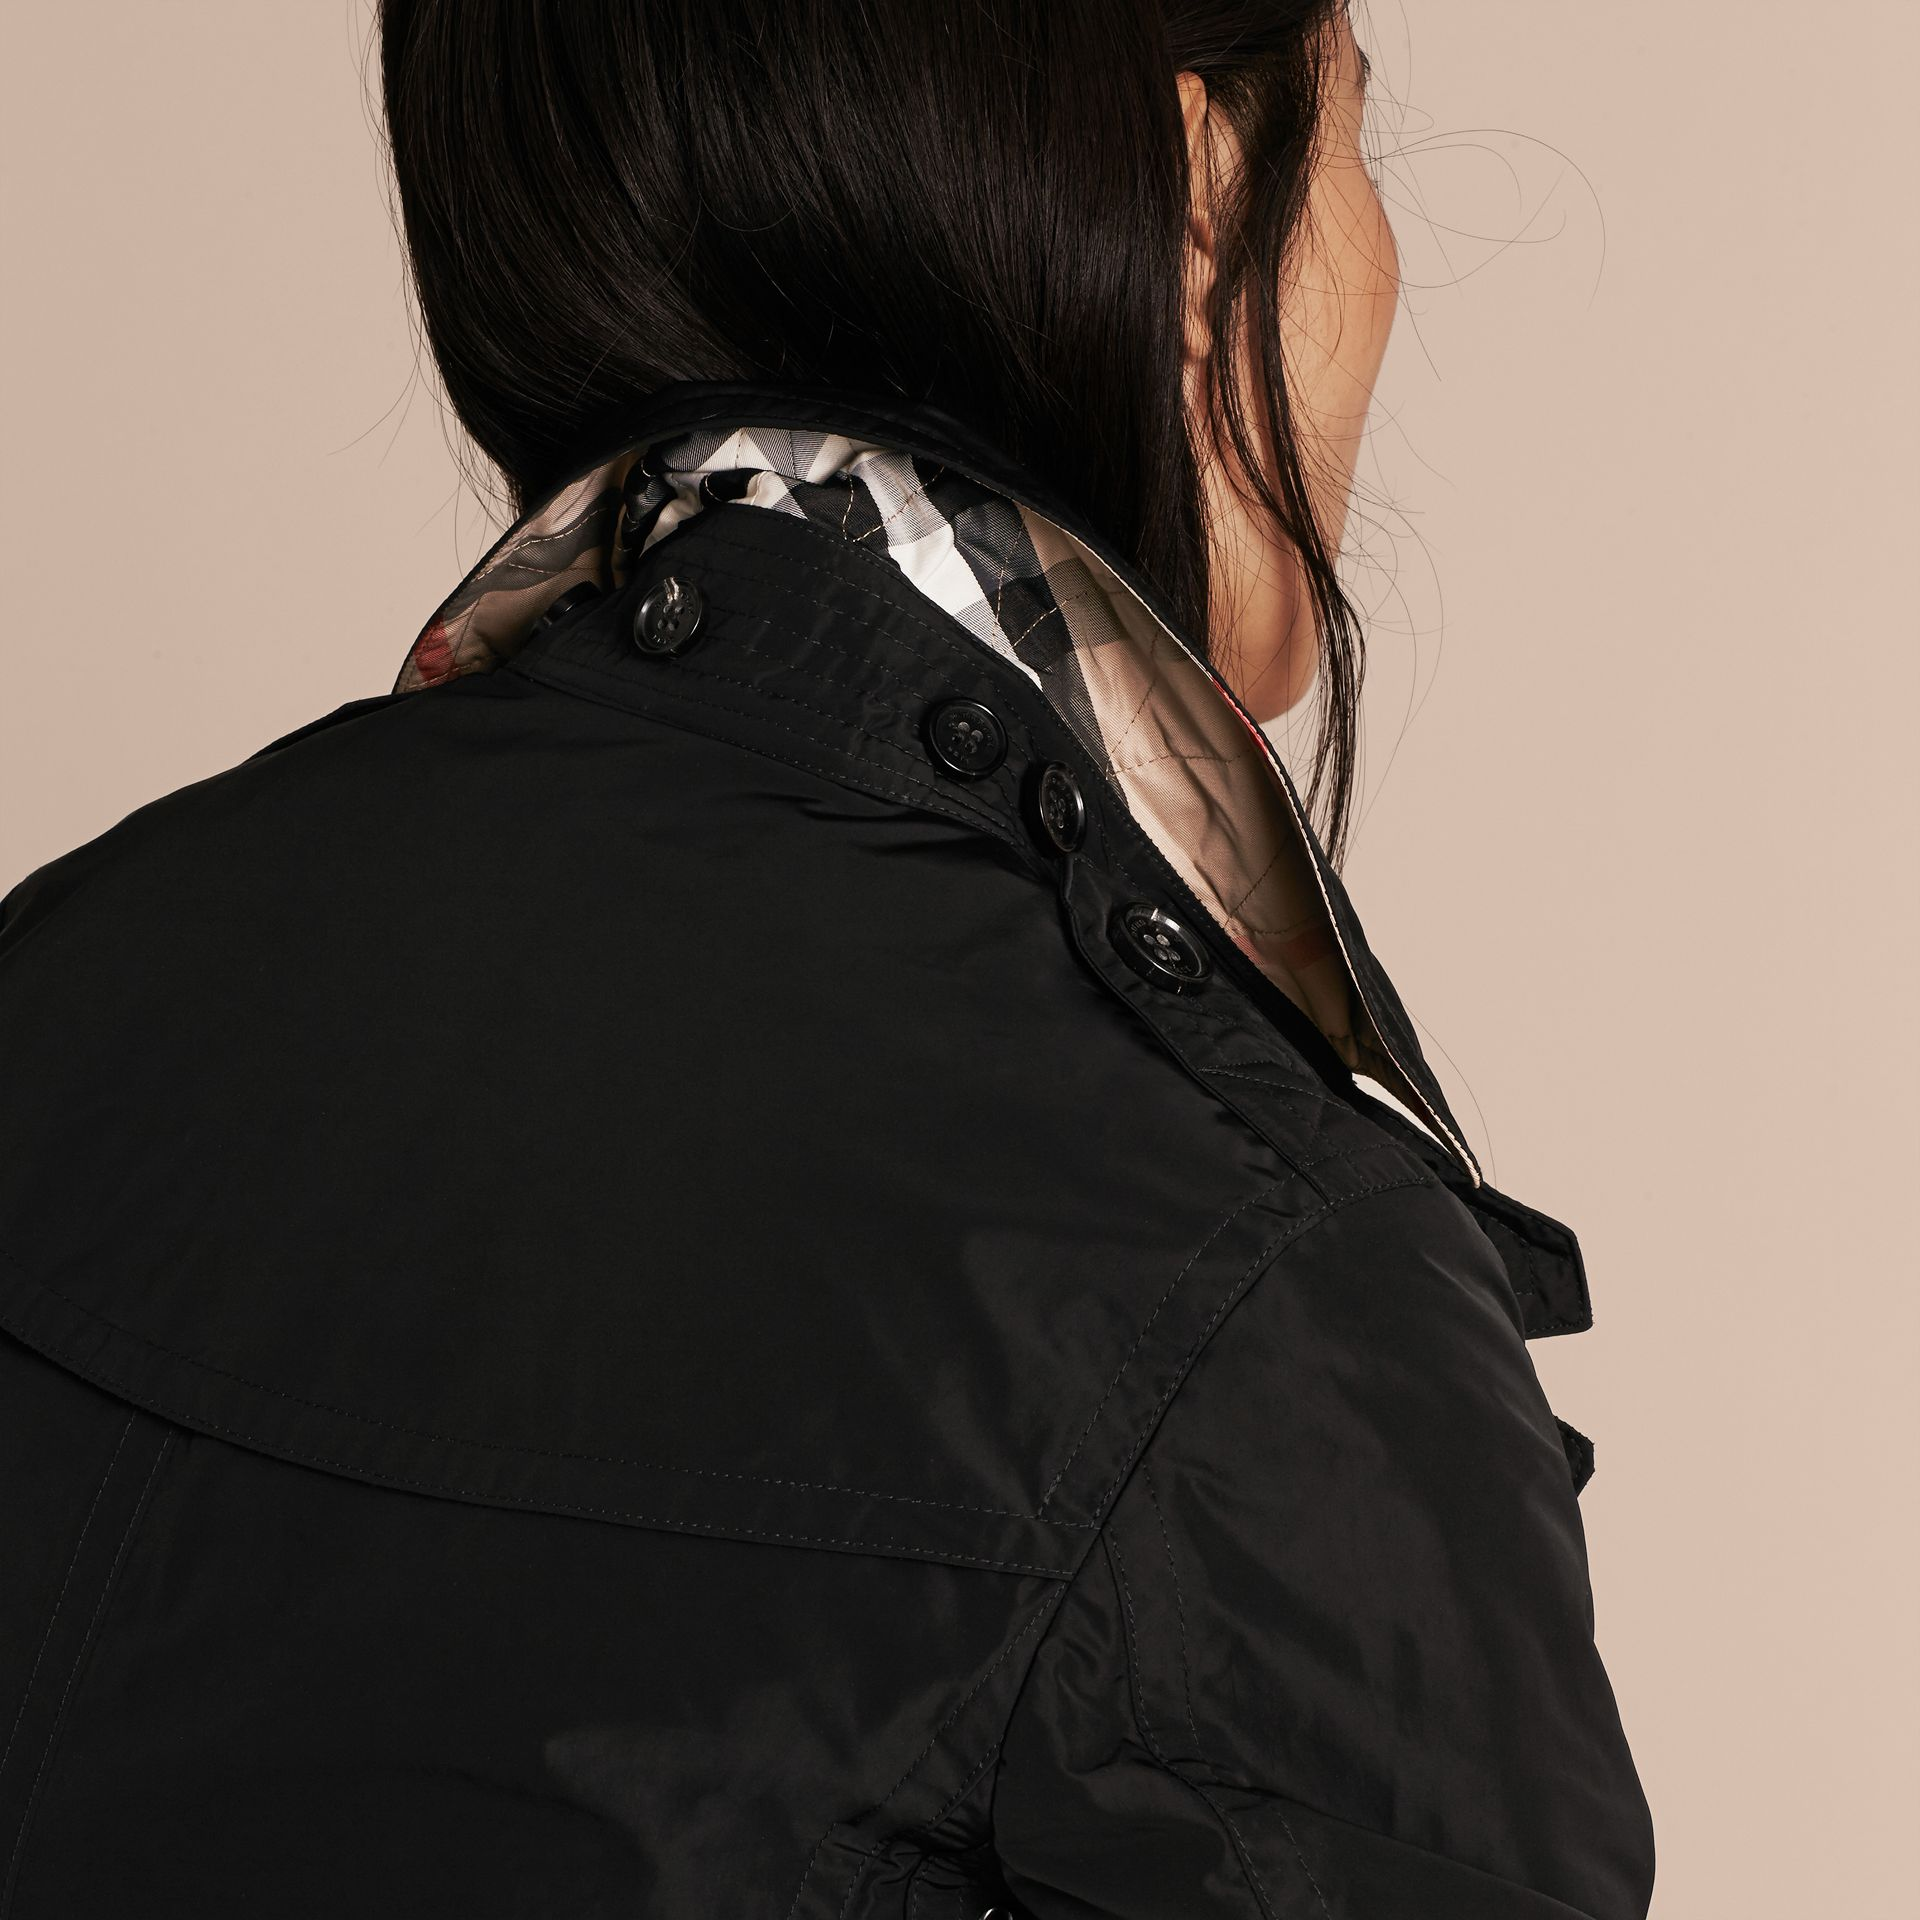 Black Taffeta Trench Coat with Detachable Hood Black - gallery image 5